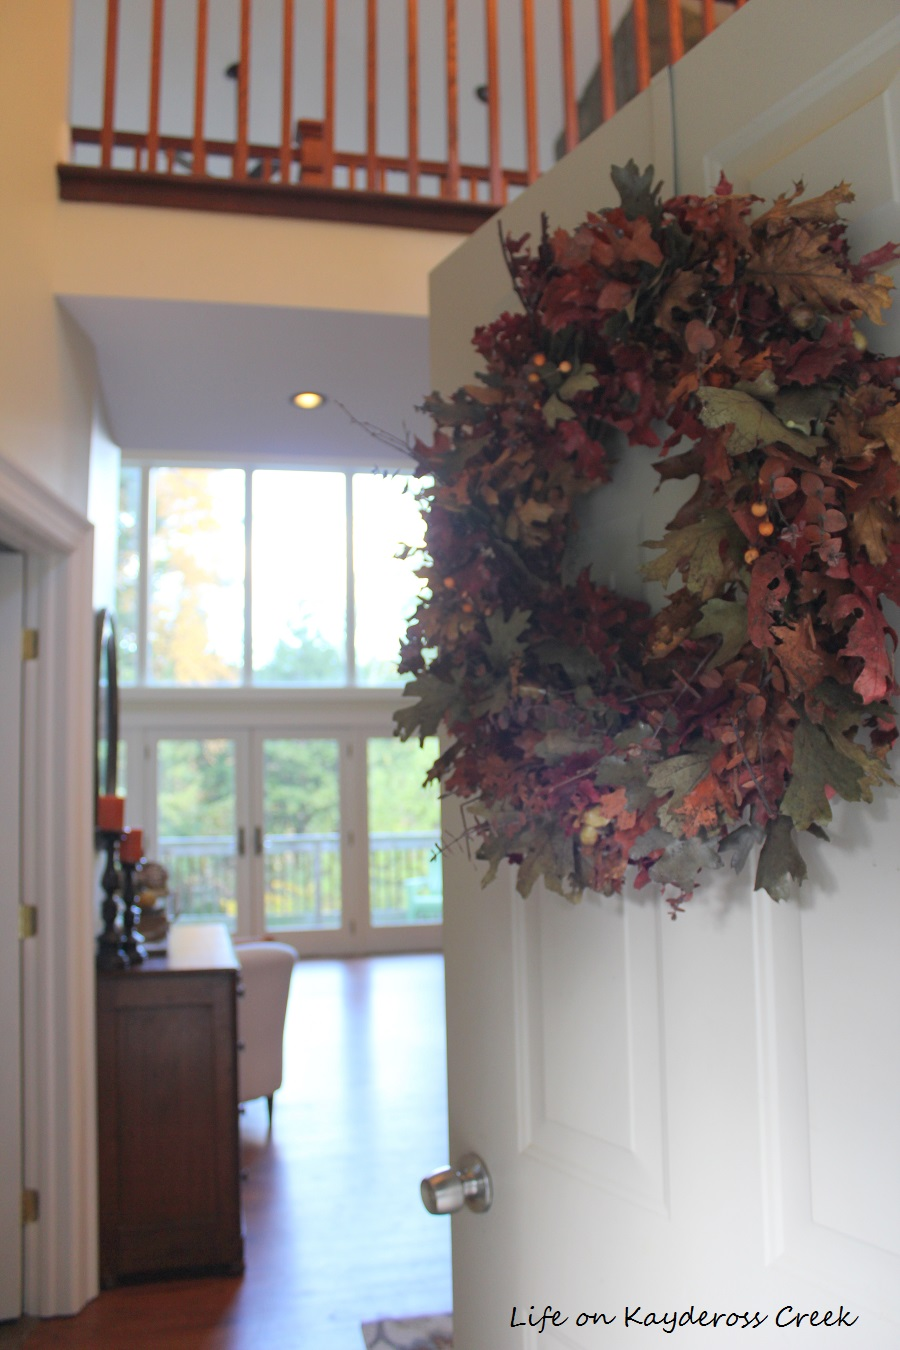 Farmhouse Fall Home Tour - Making an entrance - Life on Kaydeross Creek